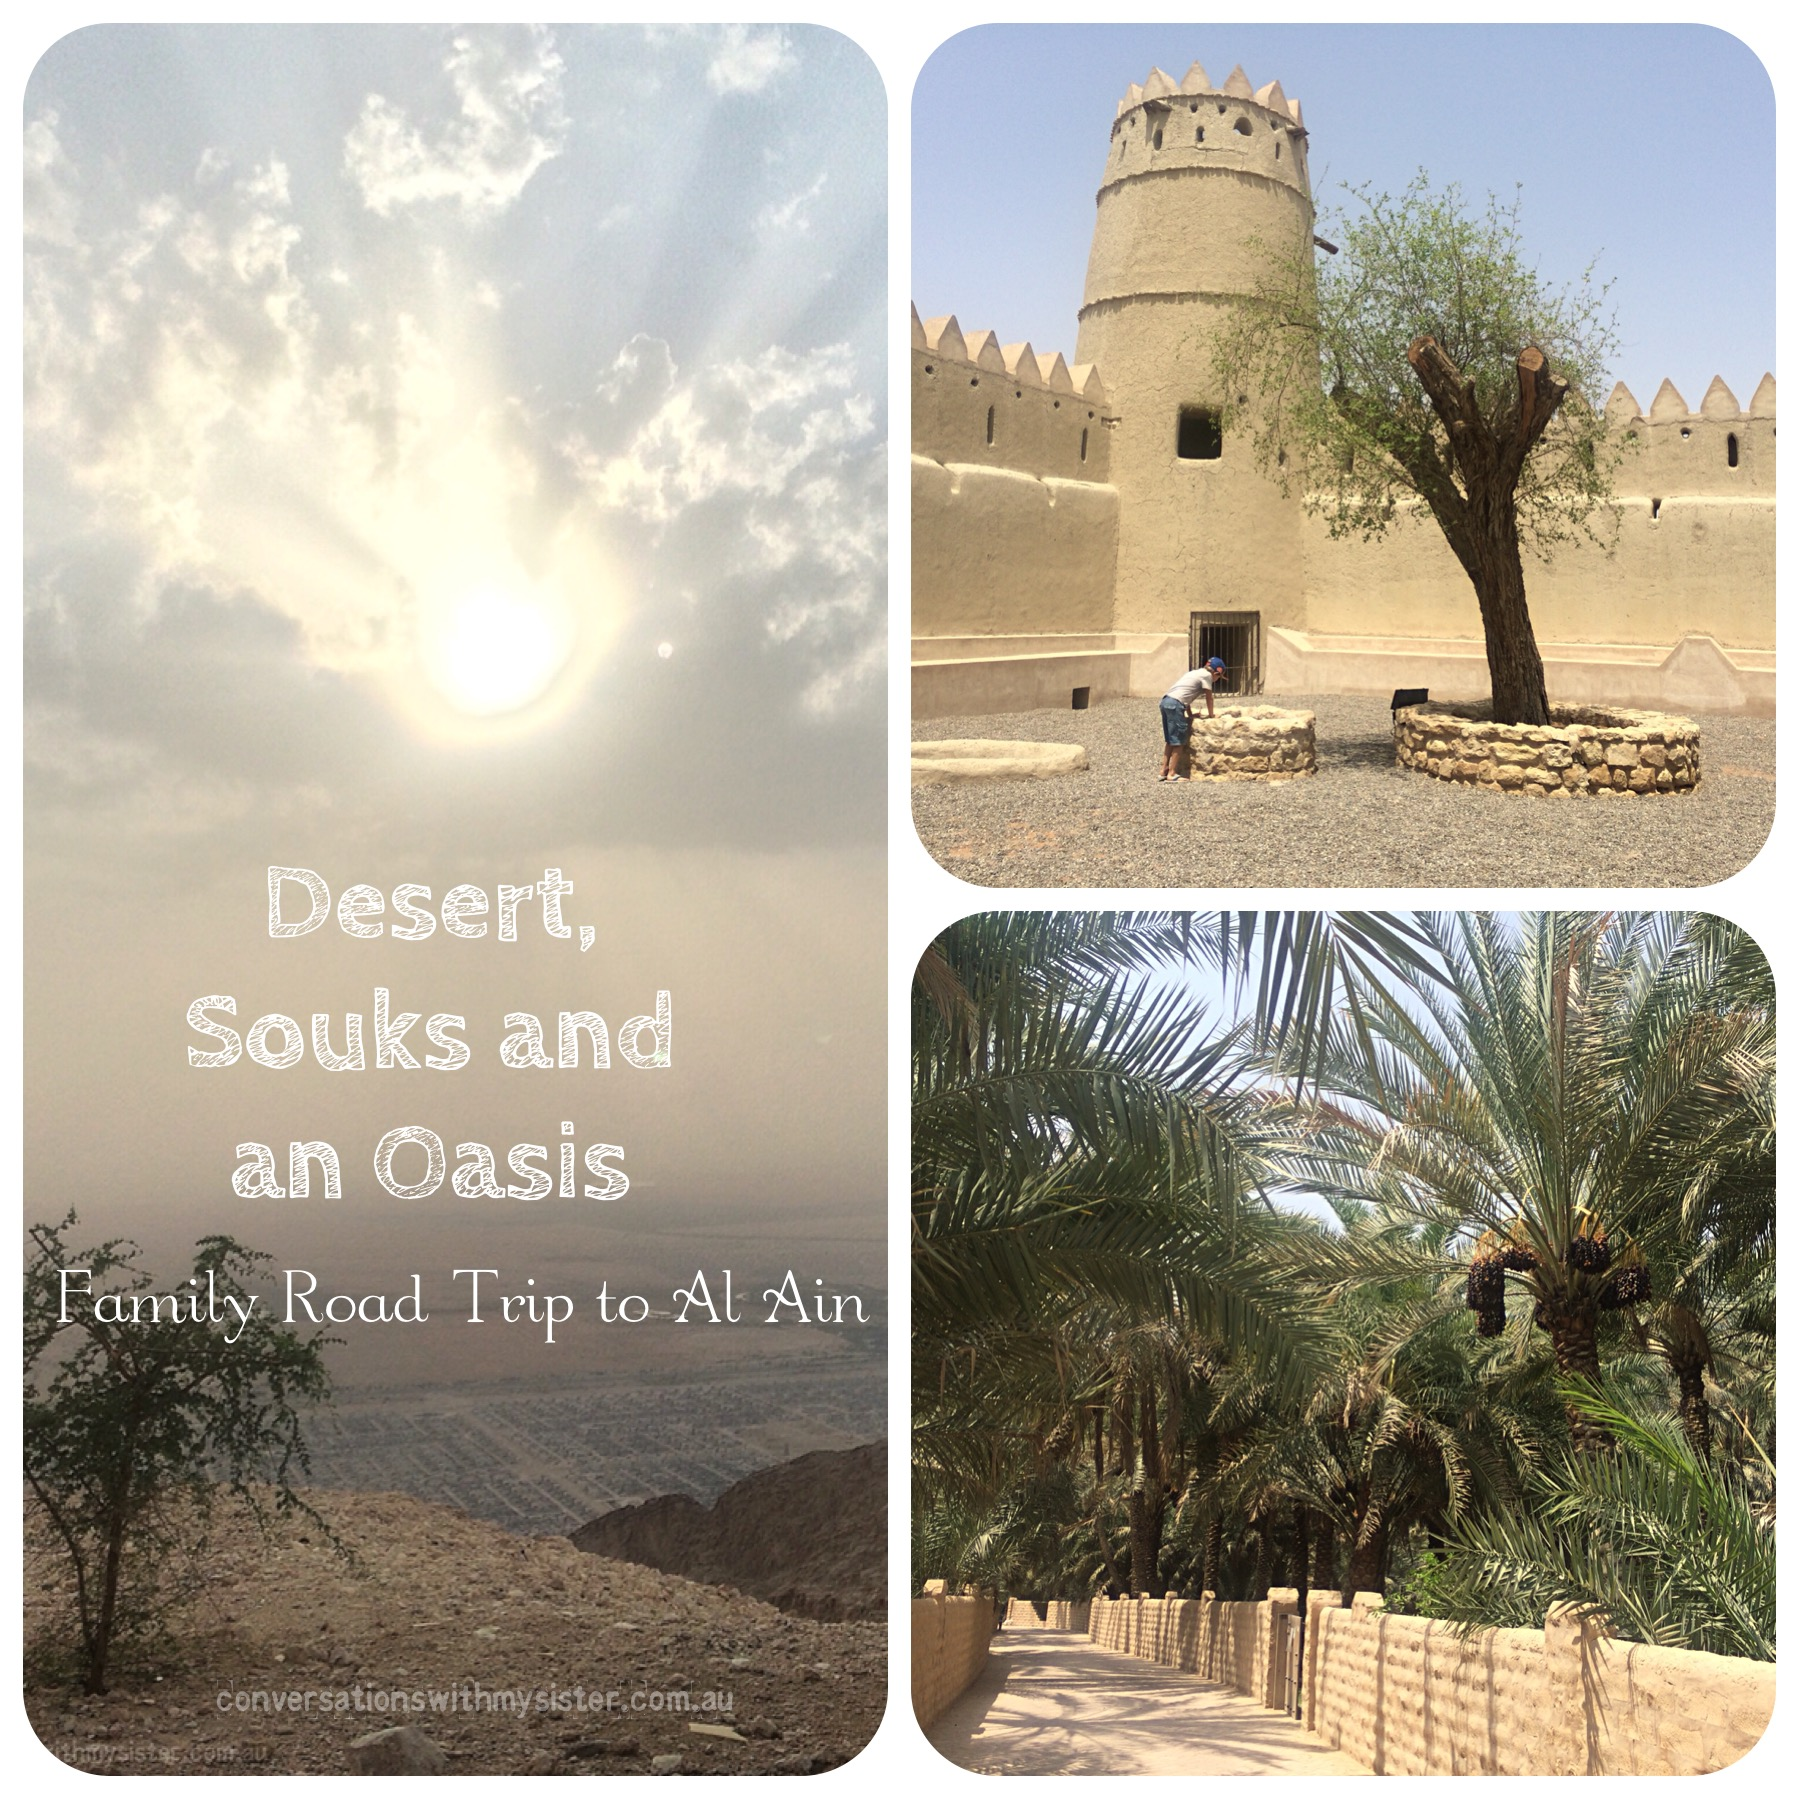 Desert, Souks and an Oasis - Family Road trip to Al Ain